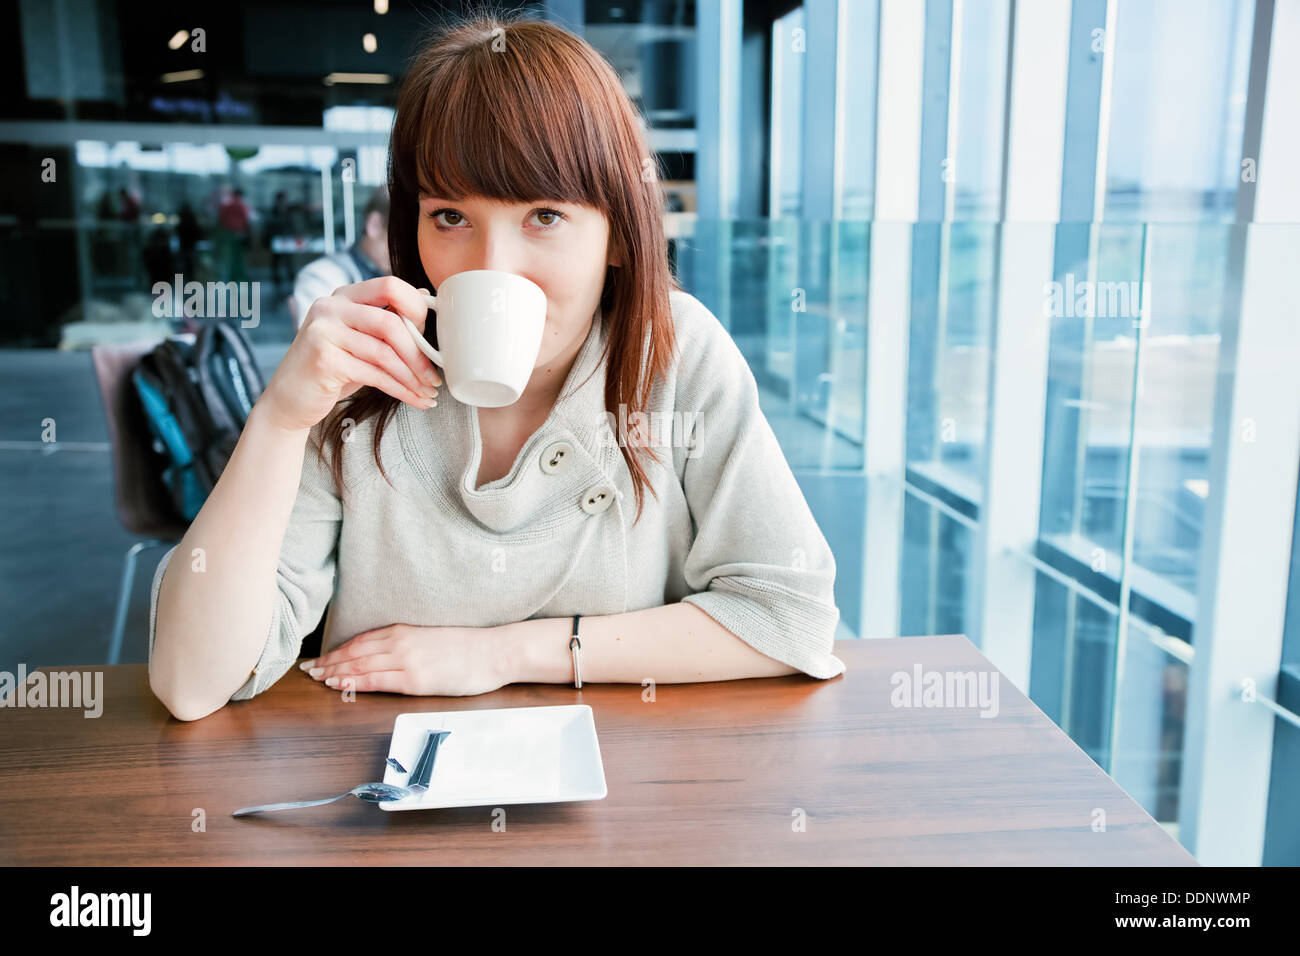 Woman drinking coffee in cup in a cafe - Stock Image